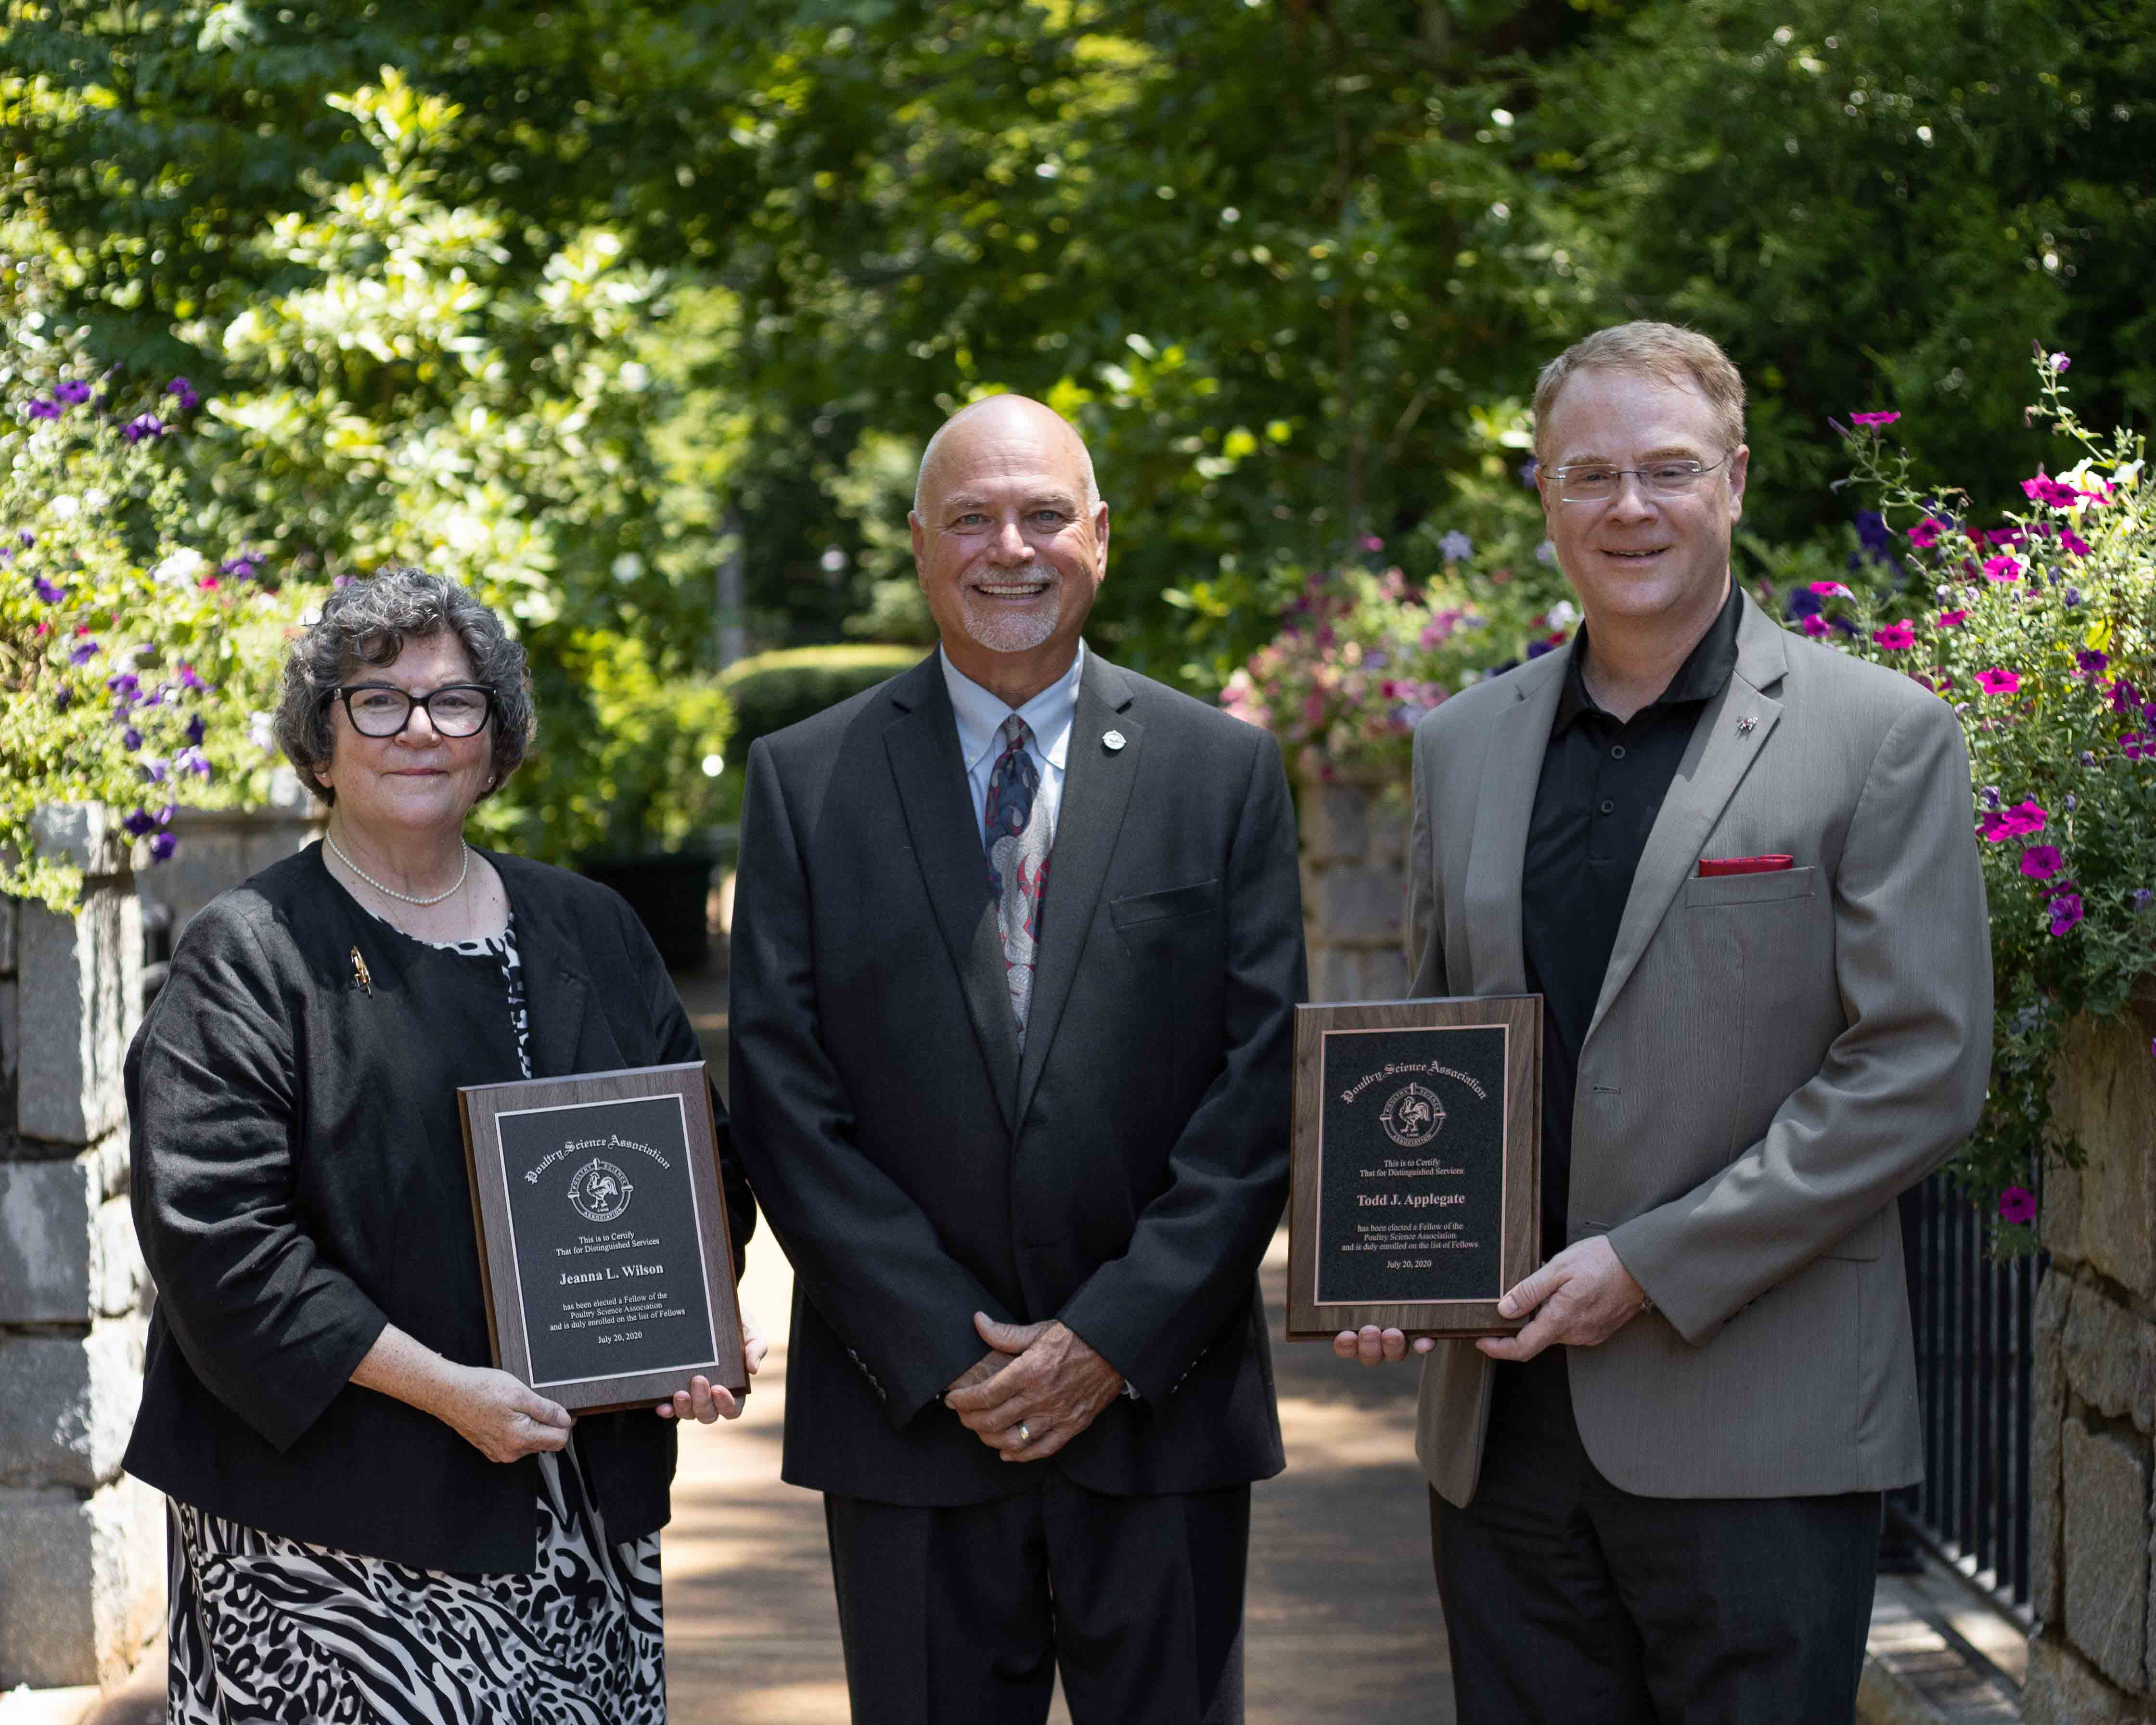 UGA Department of Poultry Science Professor Jeanna L. Wilson (left) and Professor and Department Head Todd Applegate (right) receive their Fellow awards from Poultry Science Association President Don McIntyre.